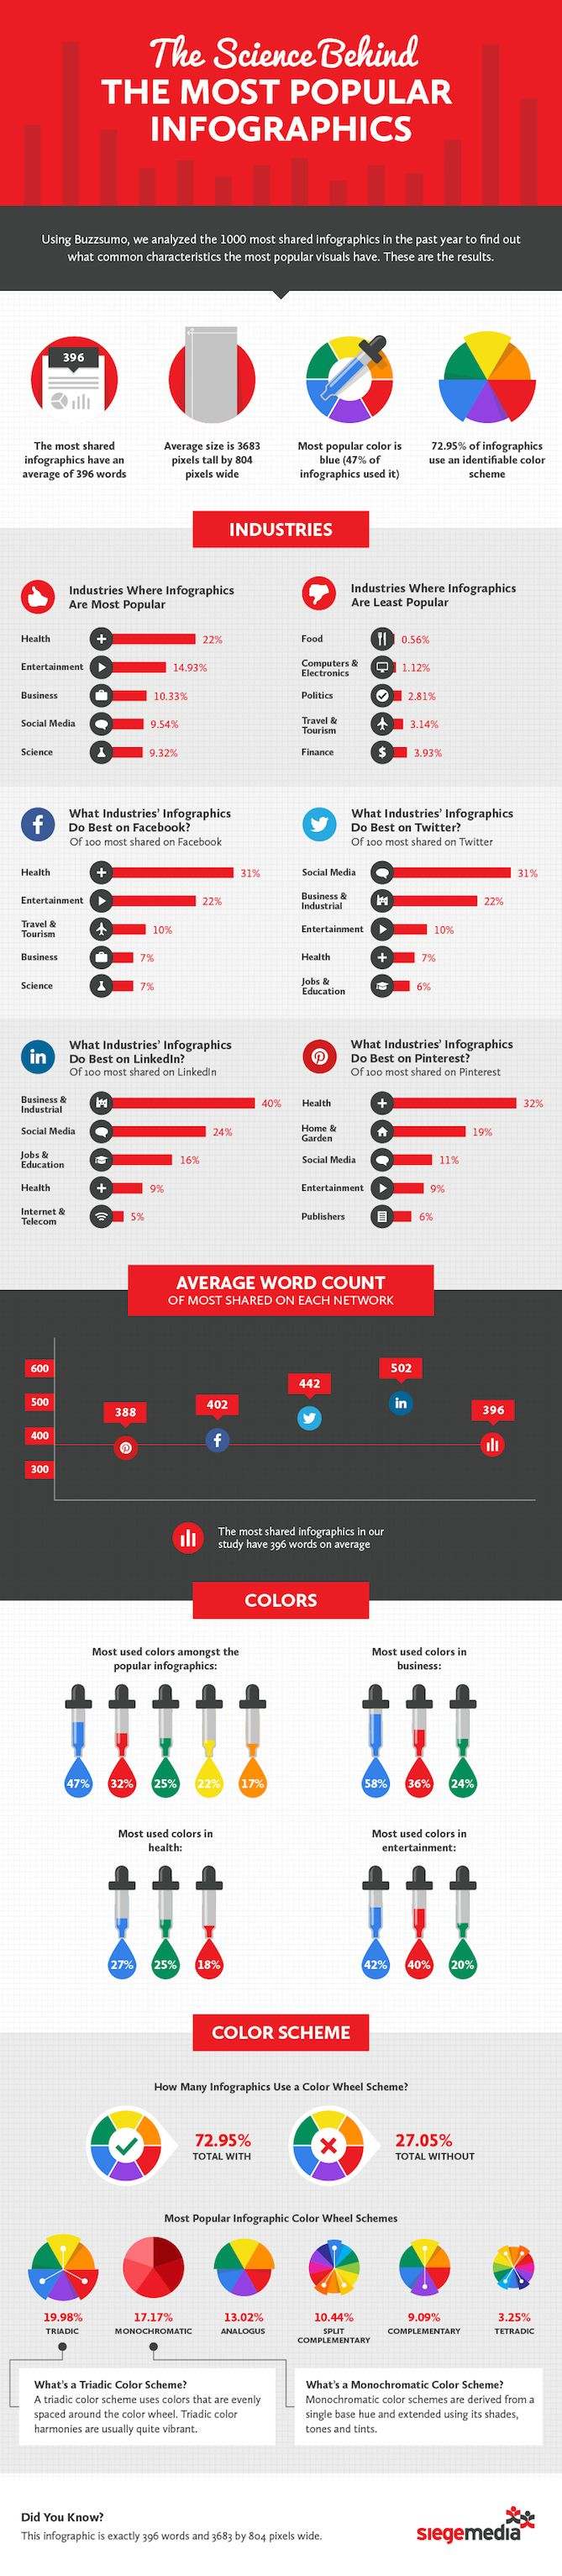 The Science of Creating Highly Shareable Infographics [Infographic]